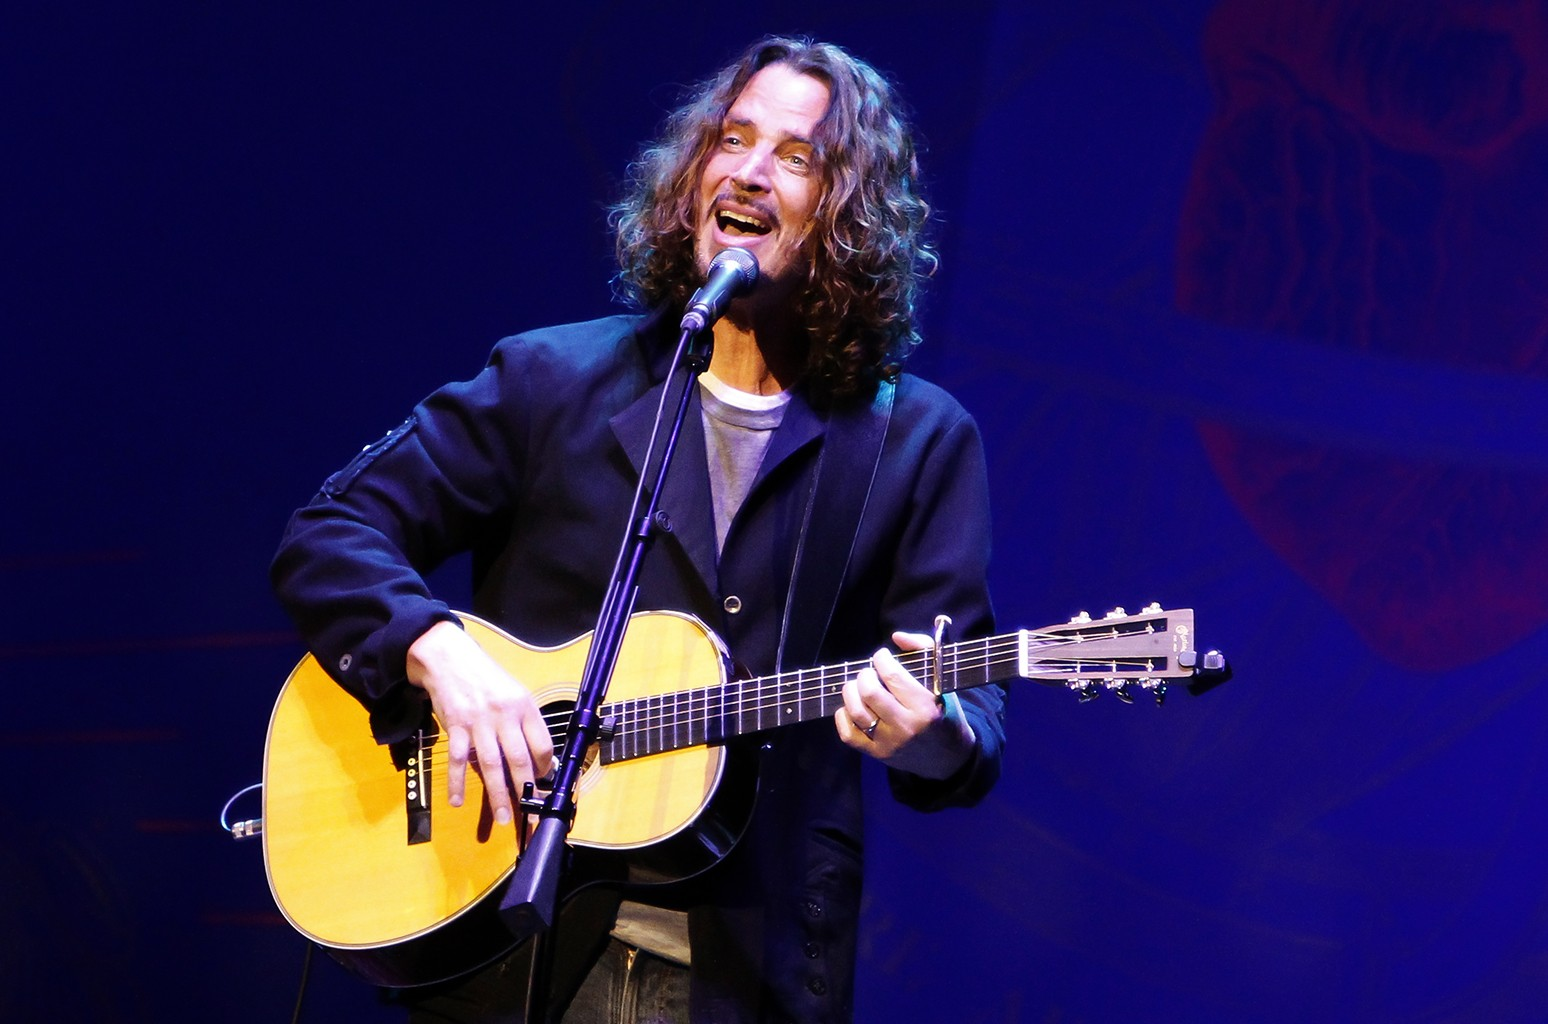 Chris Cornell performs at The Royal Opera House on May 3, 2016 in London.